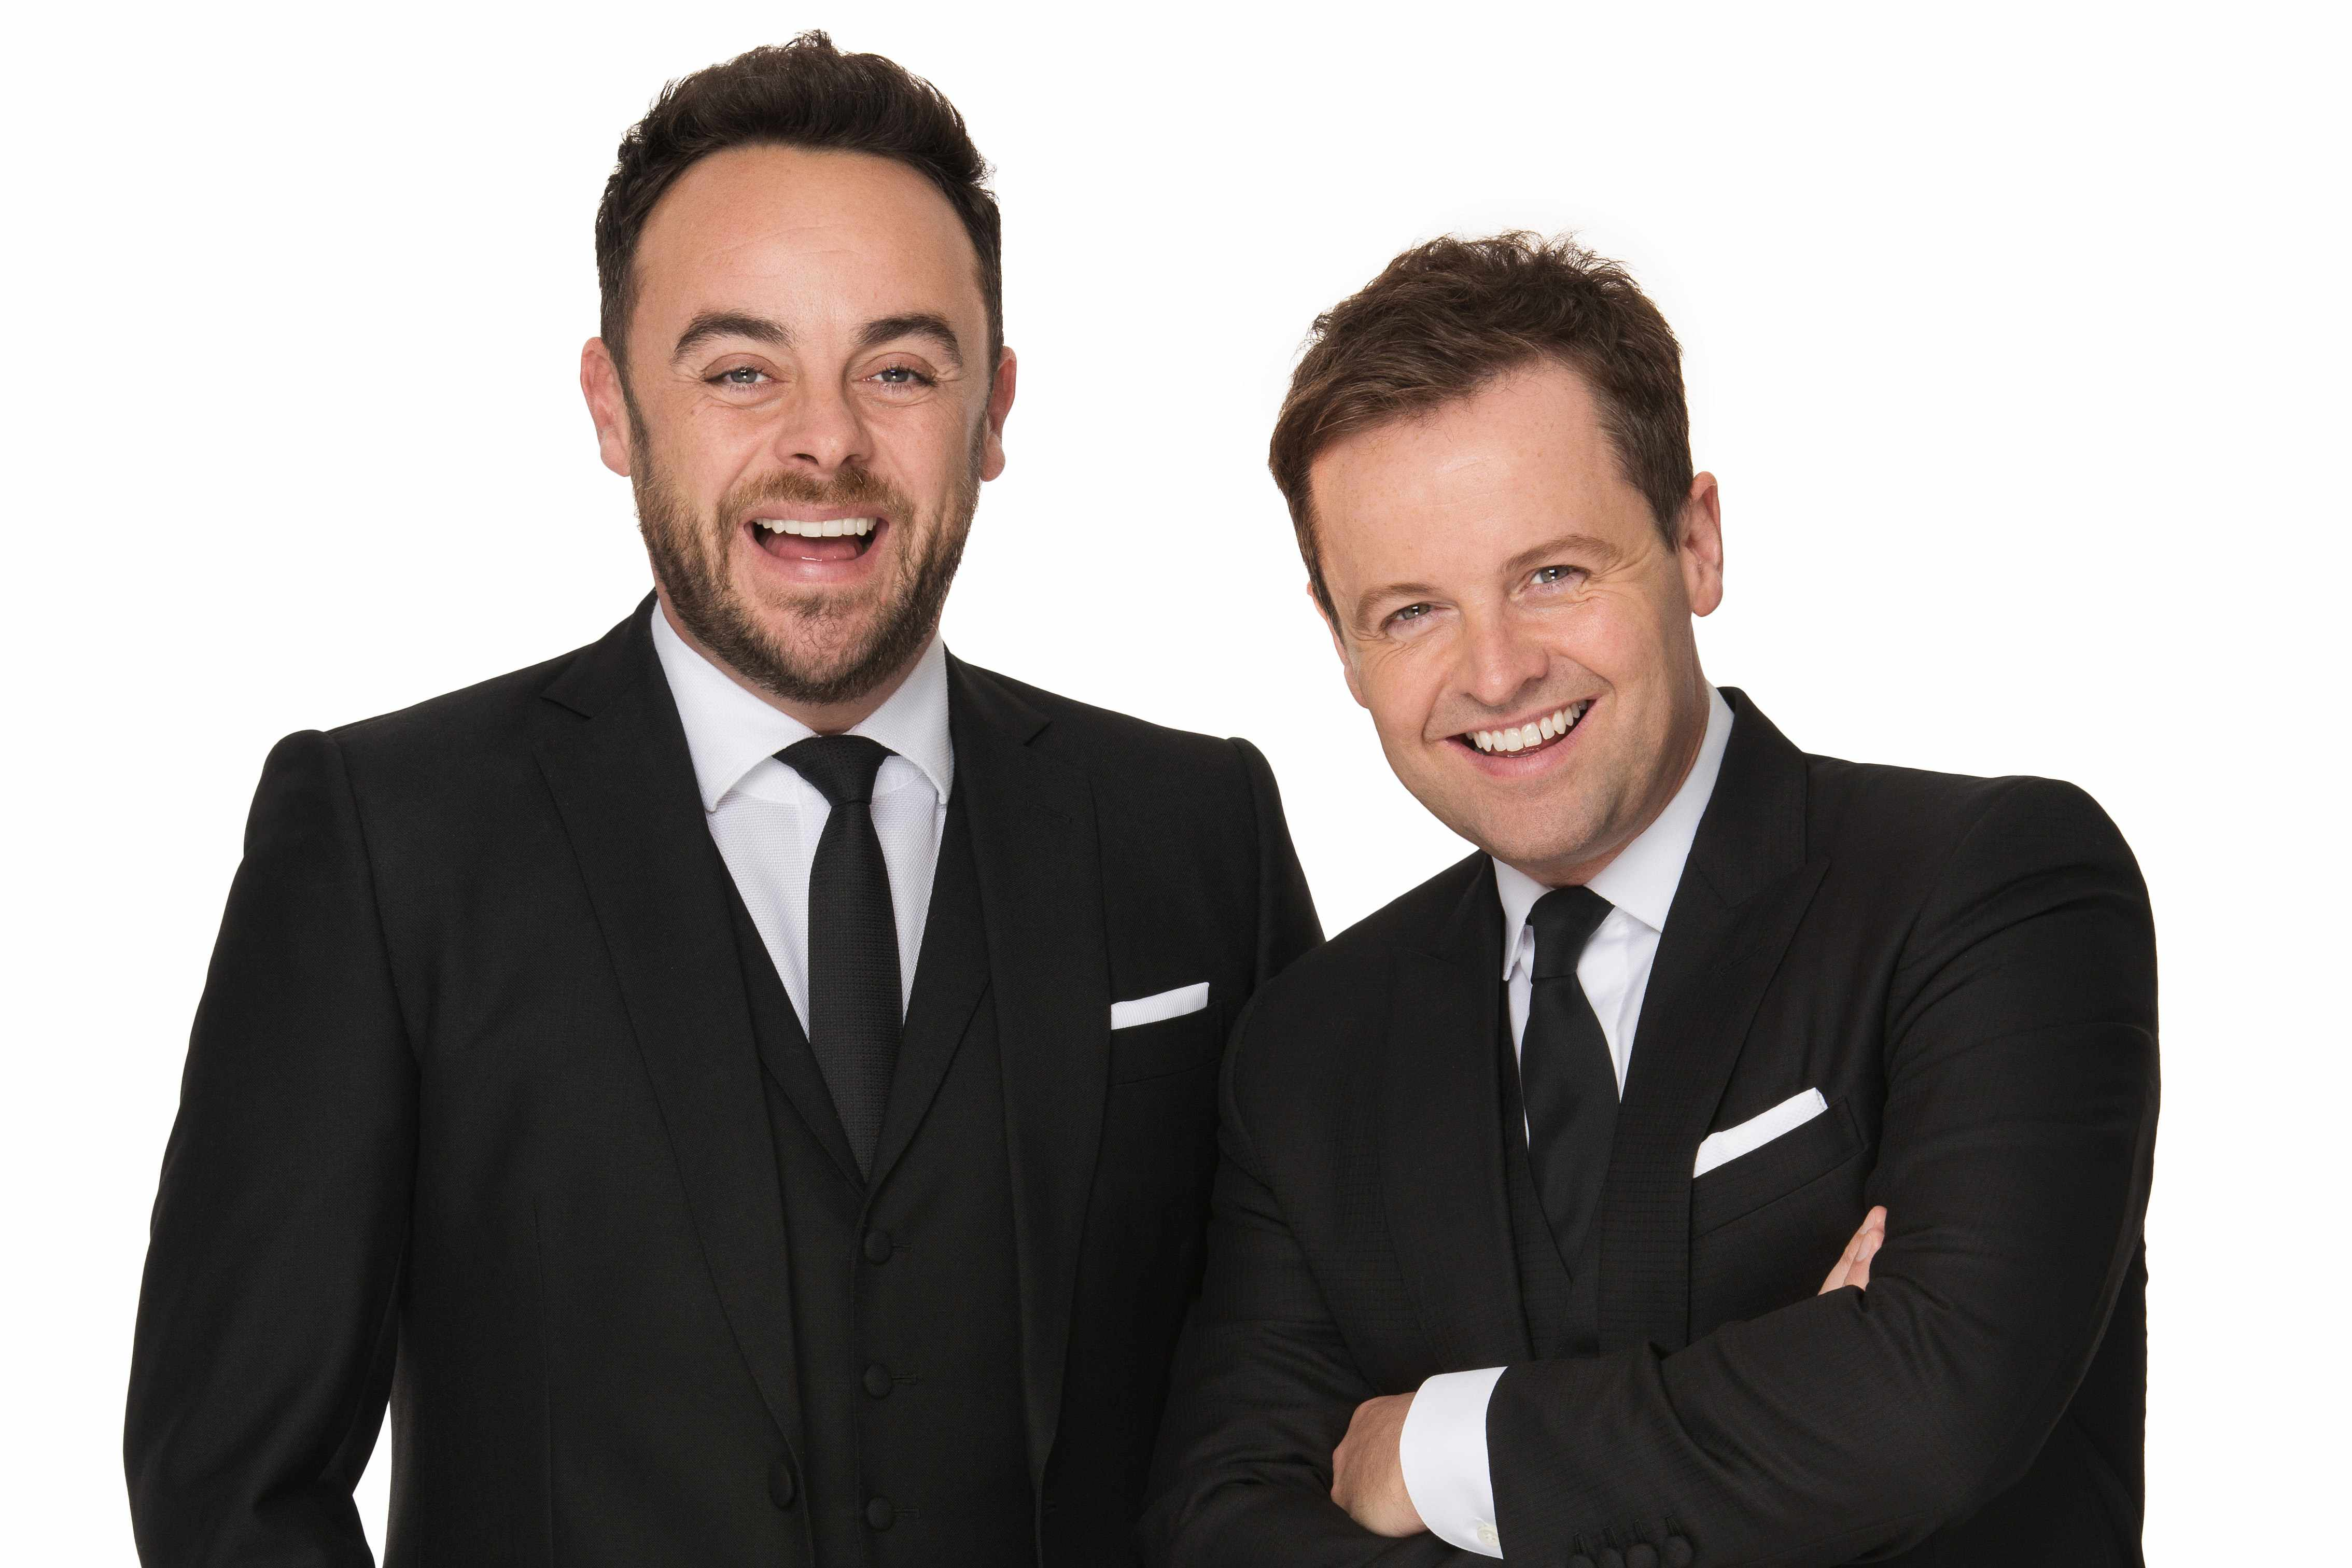 Ant and Dec Saturday Night Takeaway (ITV Pictures, JG)